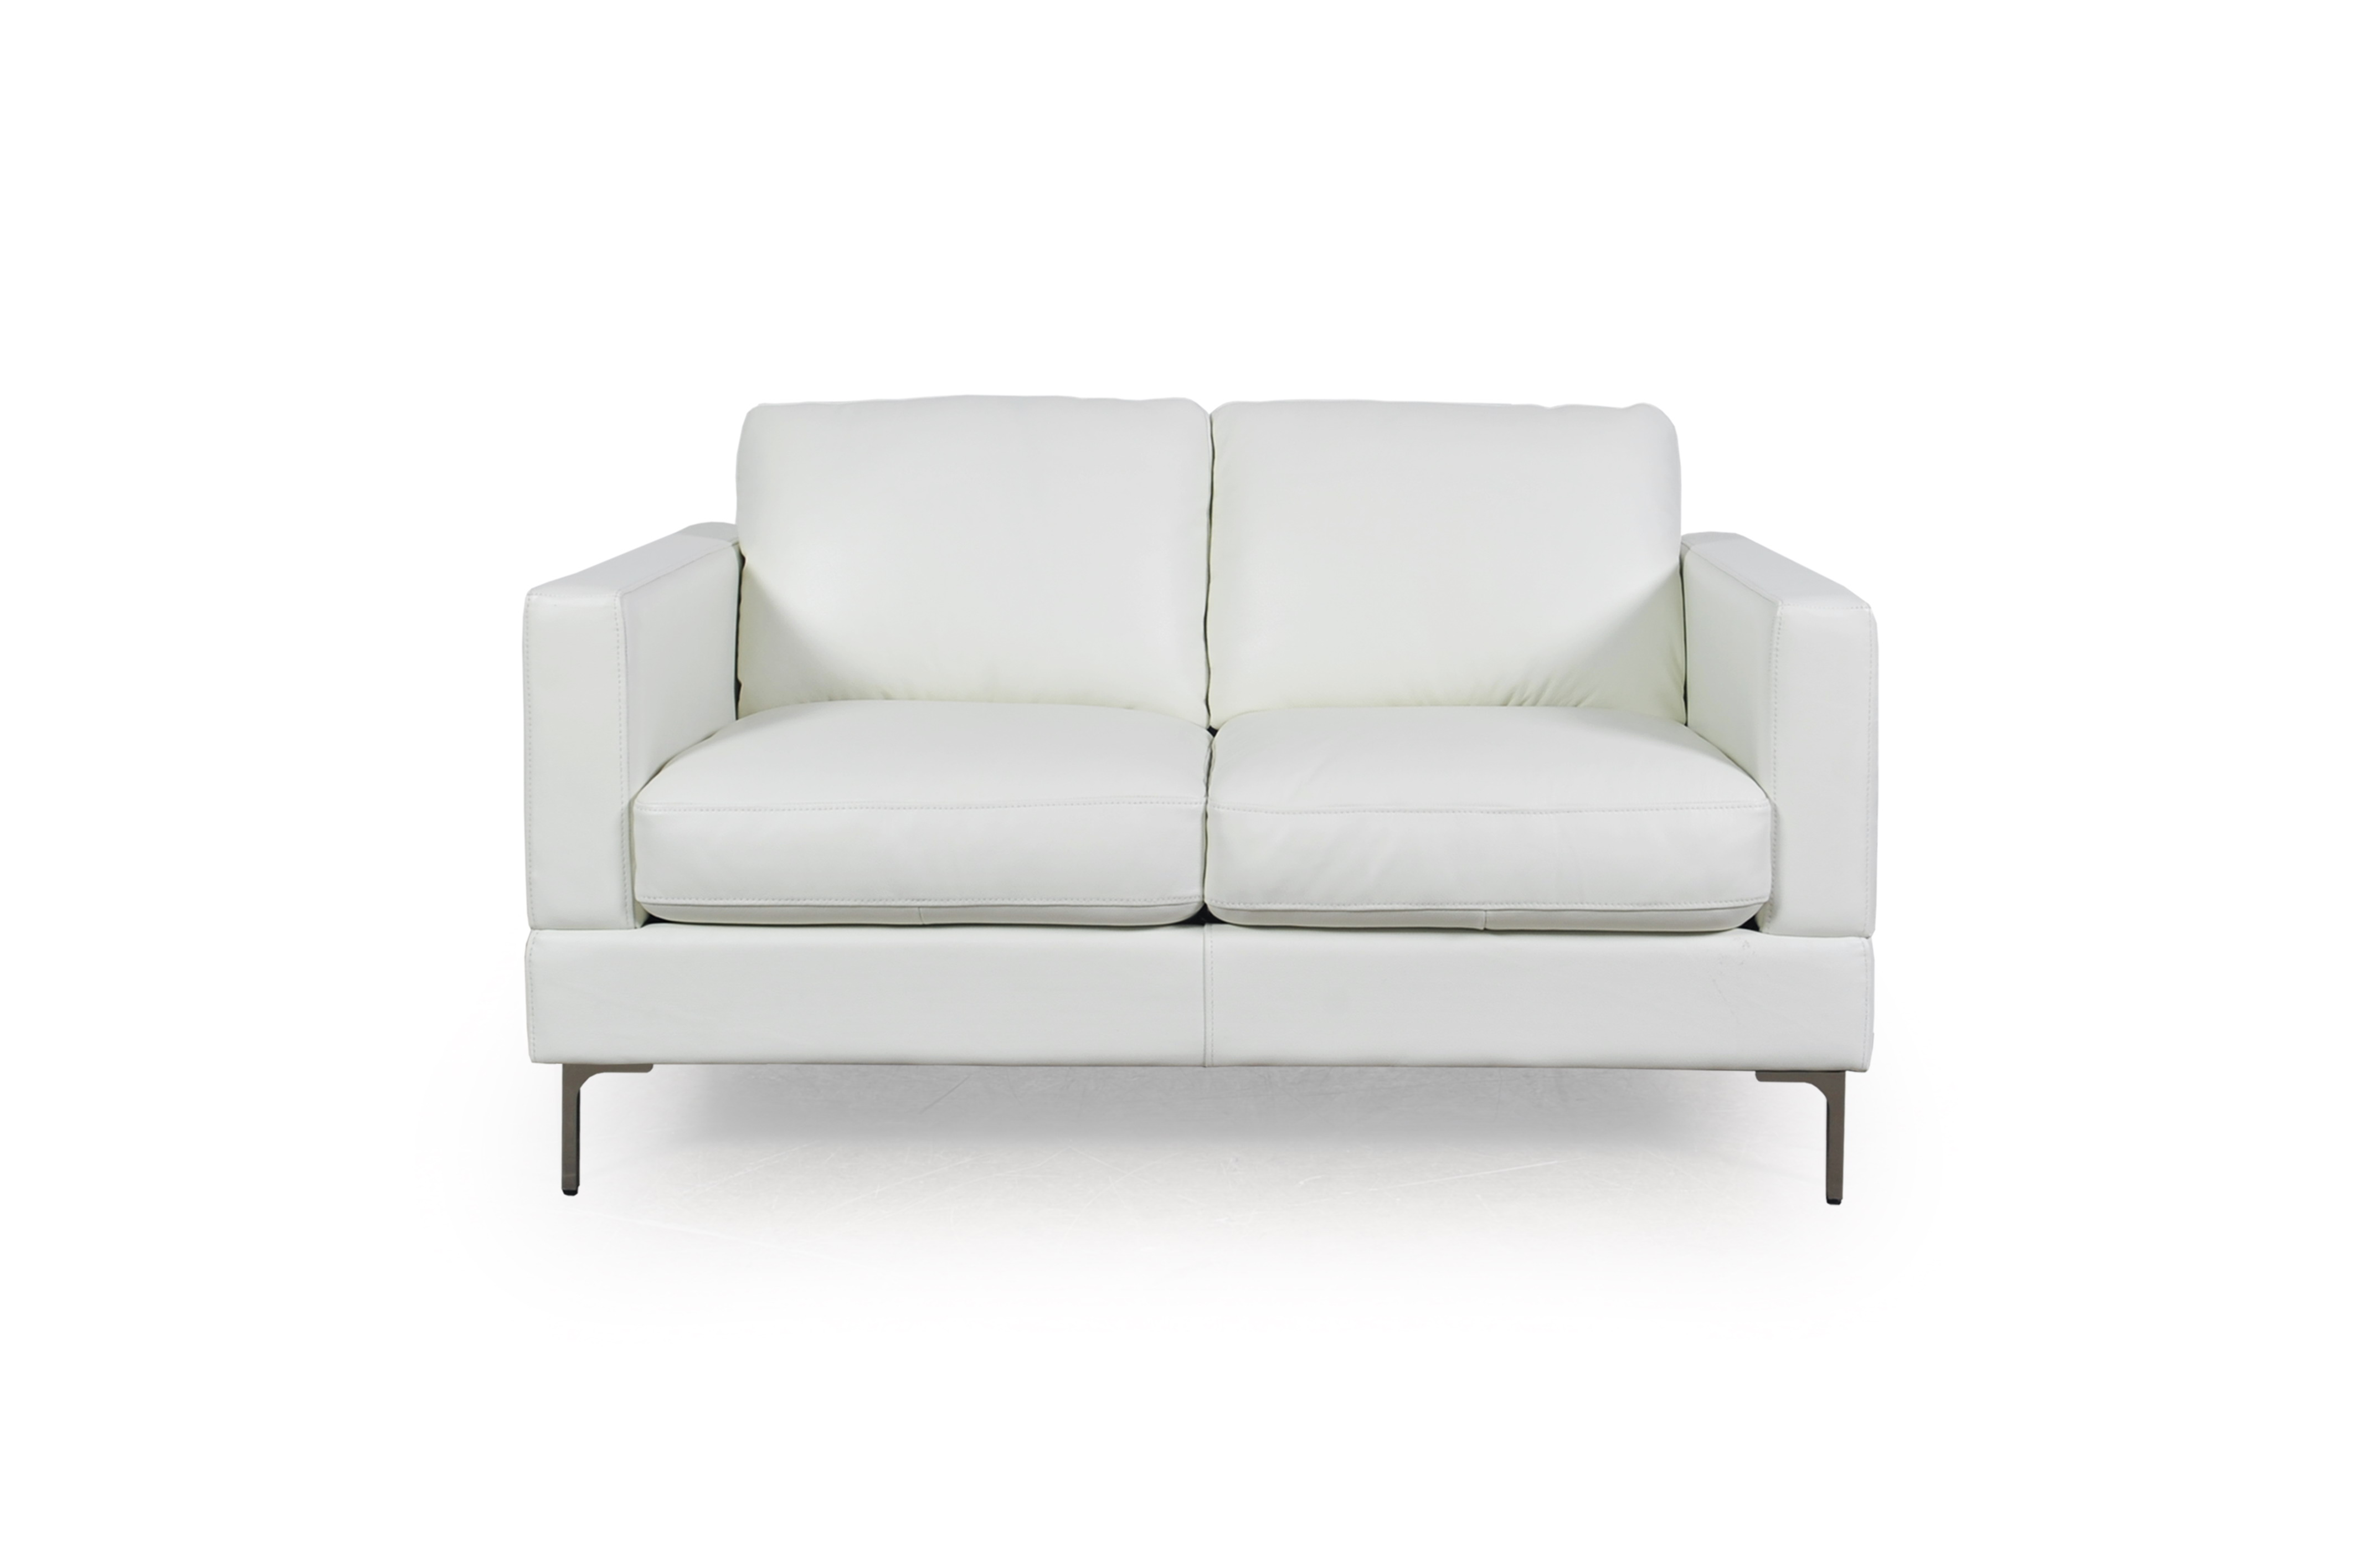 Incredible Tobia Snow White Leather Sofa Collection Sofas And Sectionals Gmtry Best Dining Table And Chair Ideas Images Gmtryco